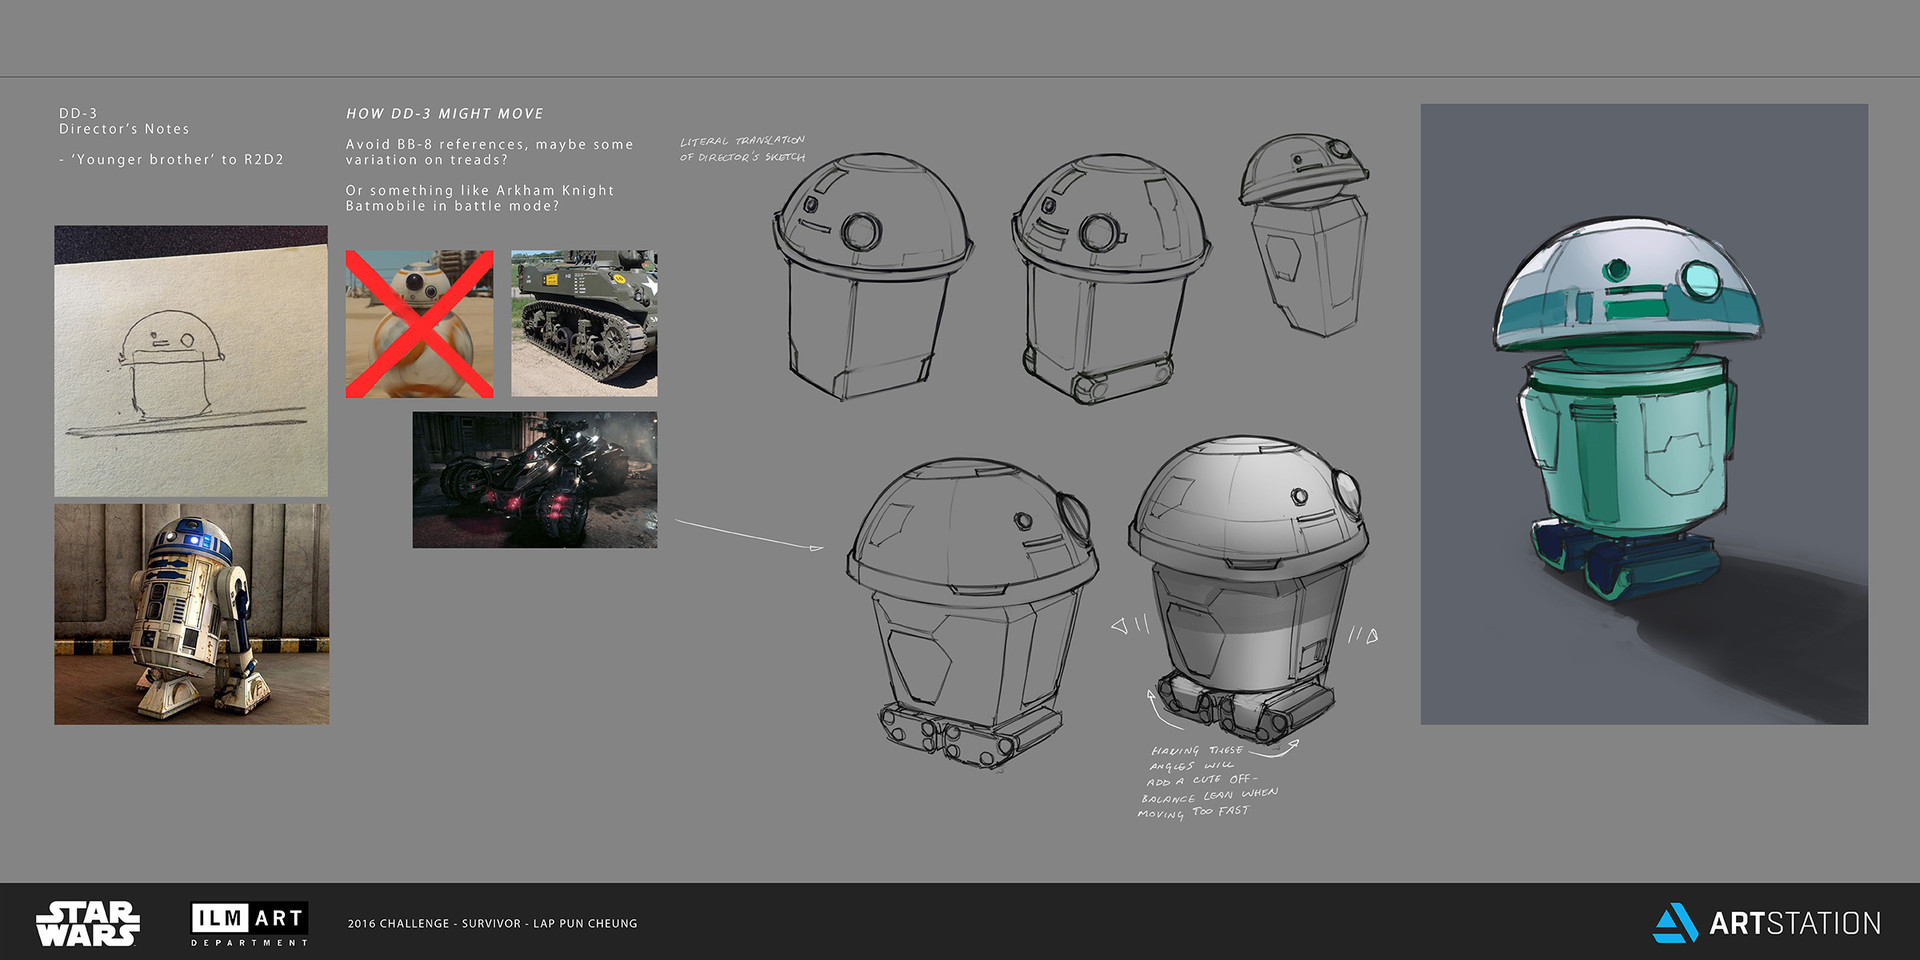 Lap pun cheung the job character design dd 3 concept art 001 online